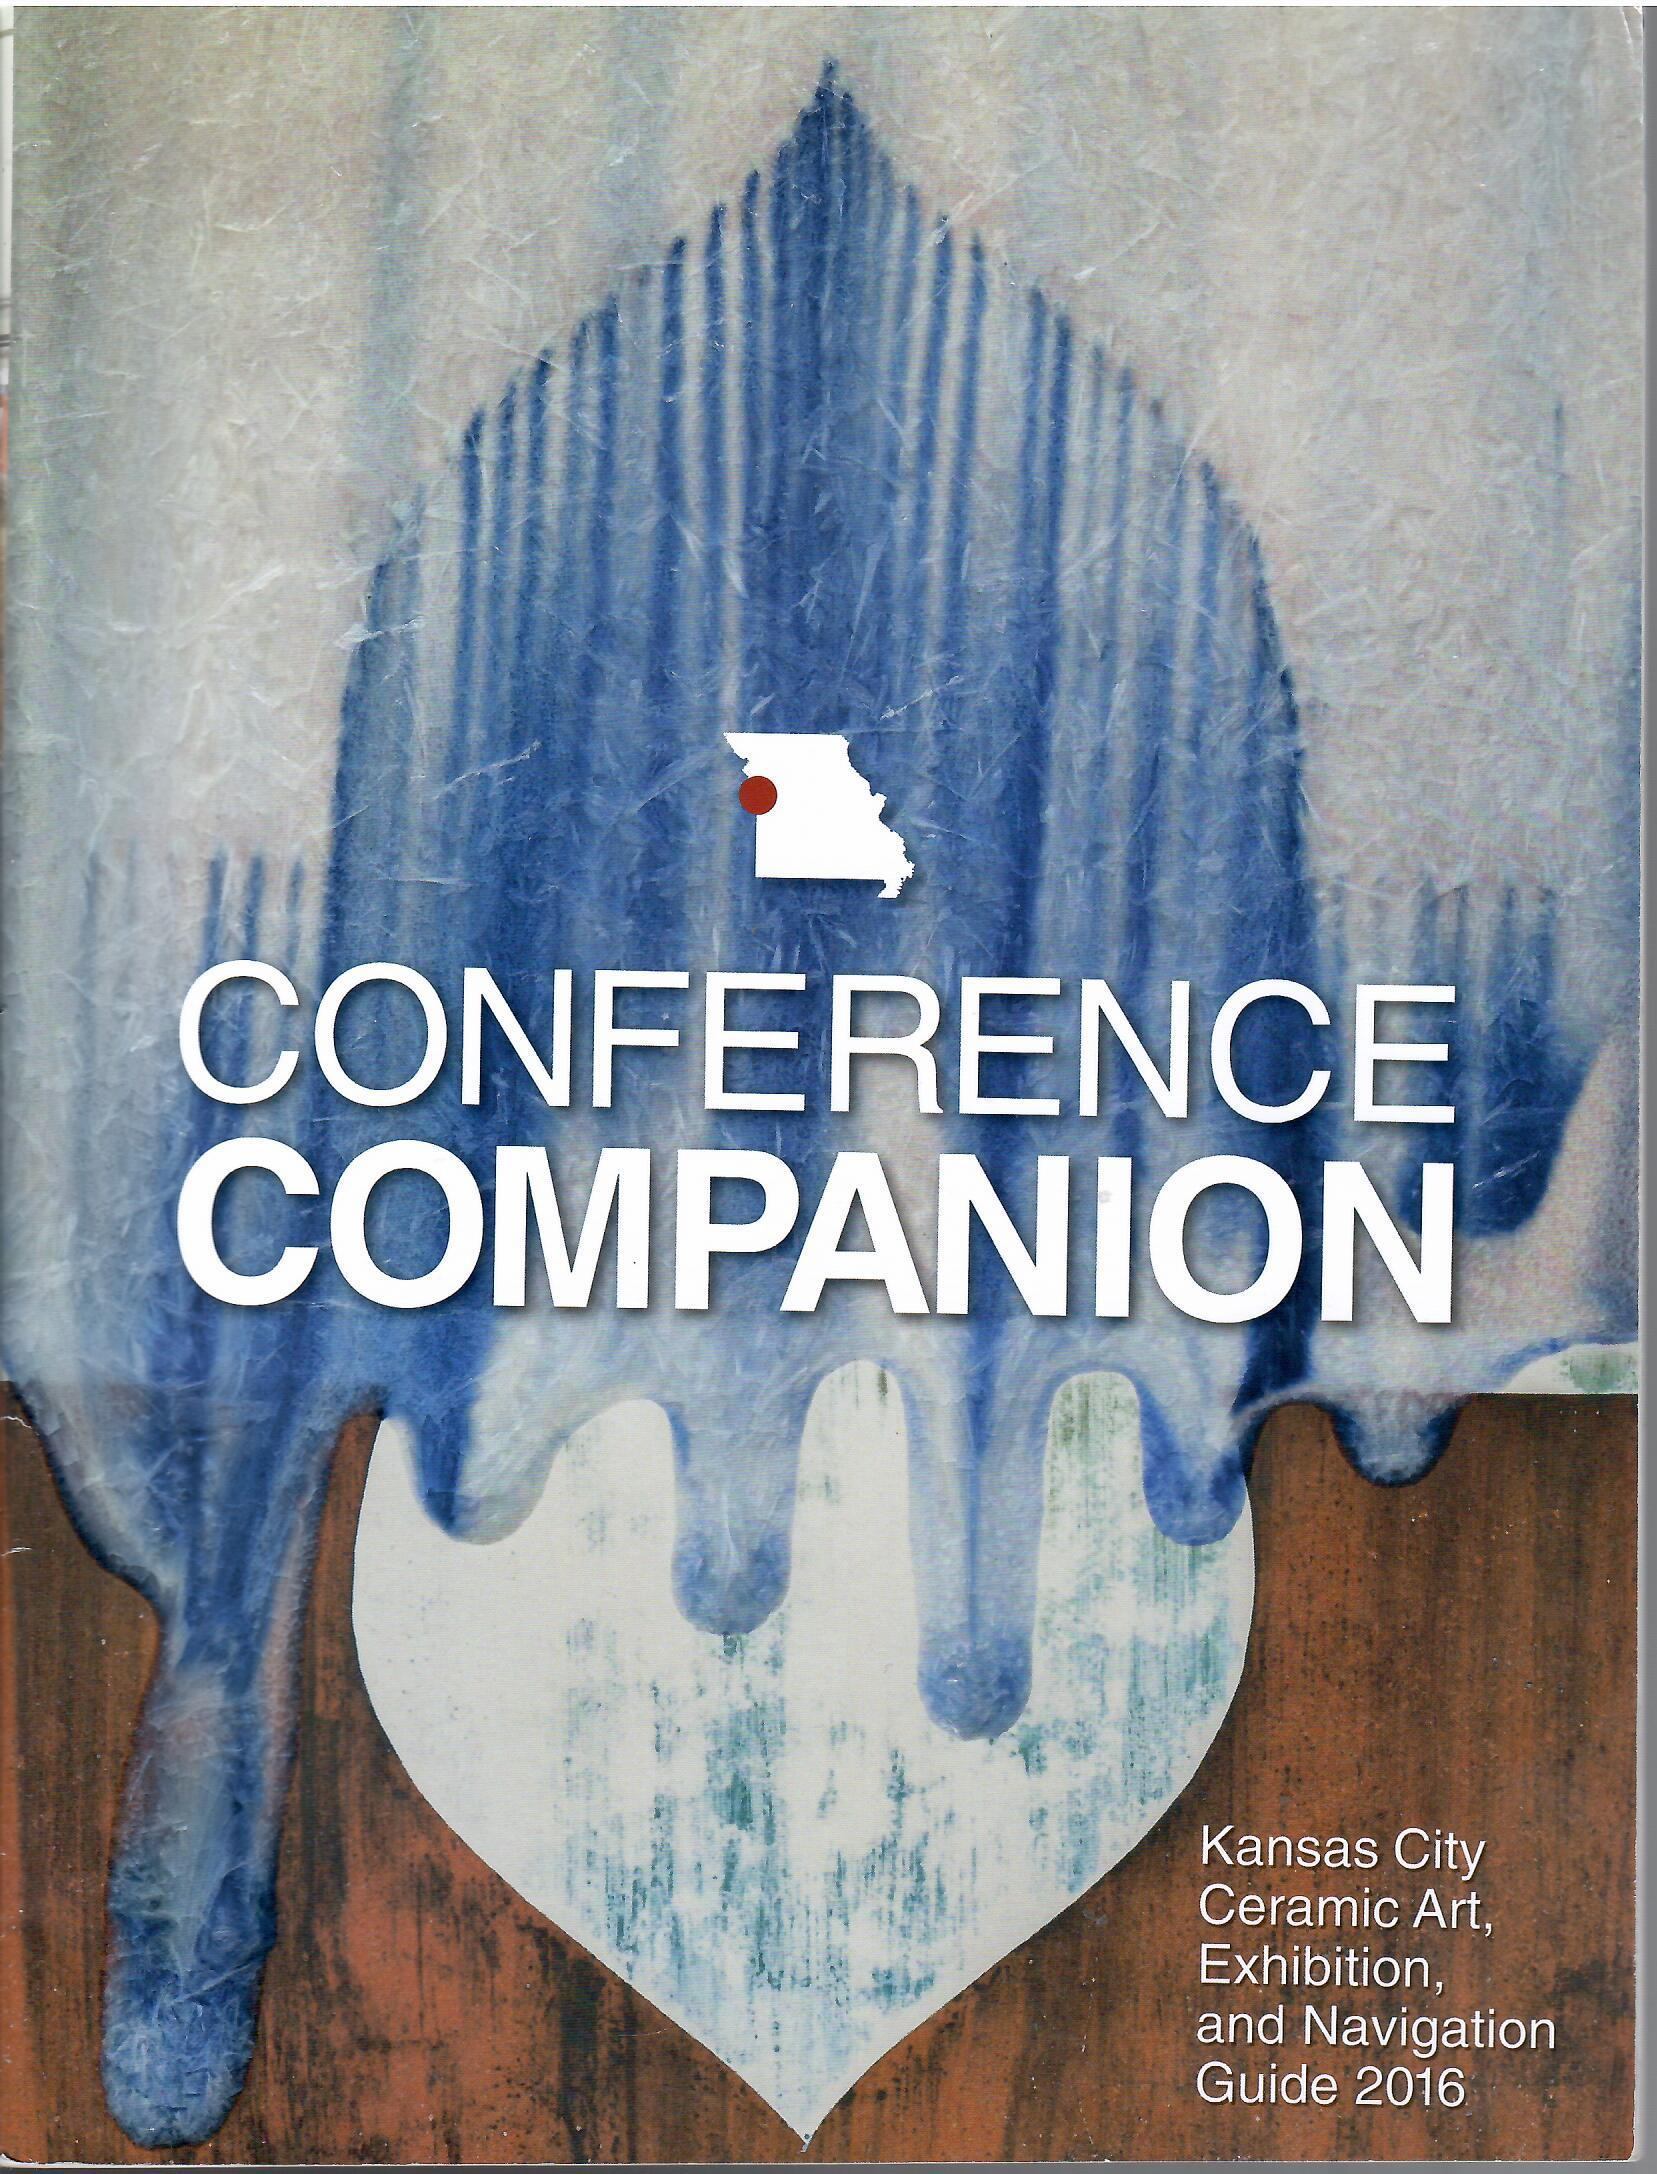 Image for Kansas City Ceramic Art, Exhibition & Navigation Guide 2016; CONFERENCE COMPANION